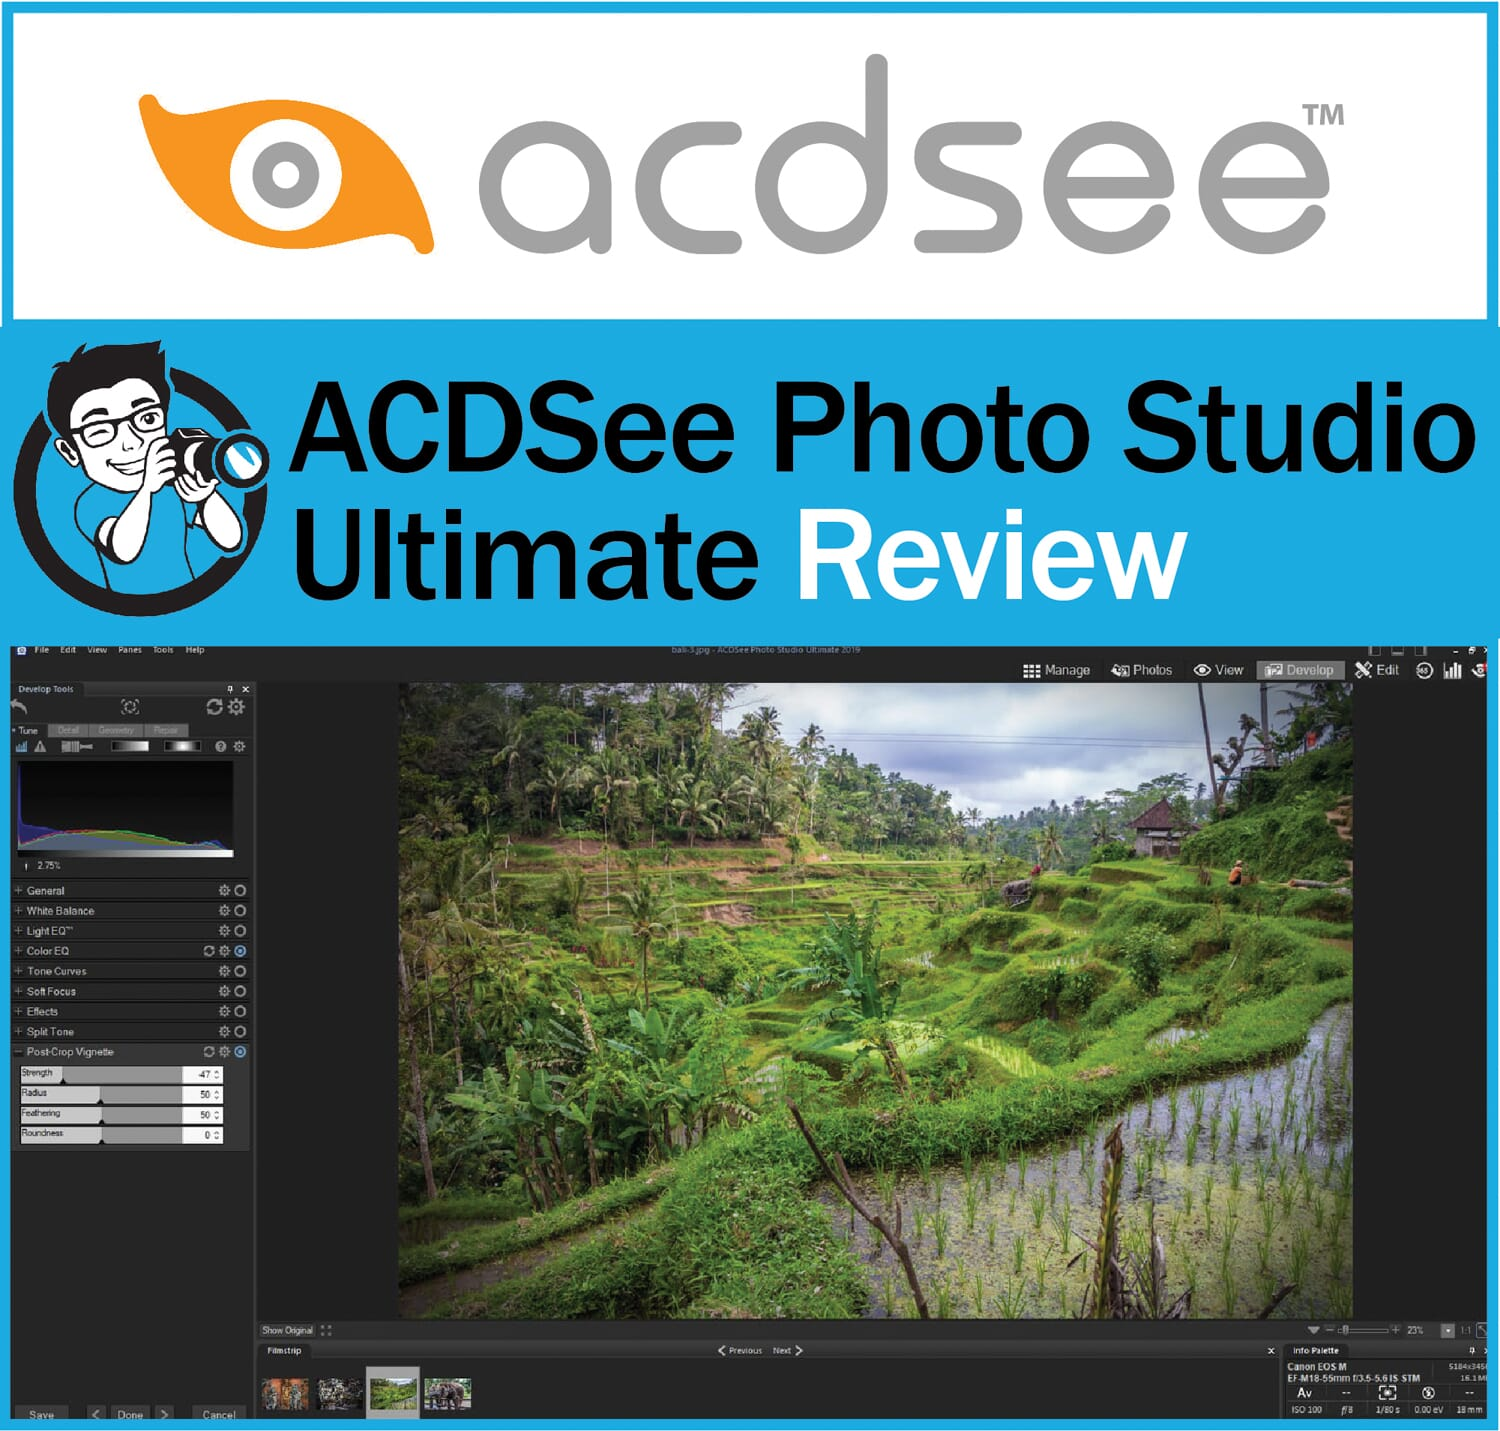 ACDSee Photo Studio Ultimate Review